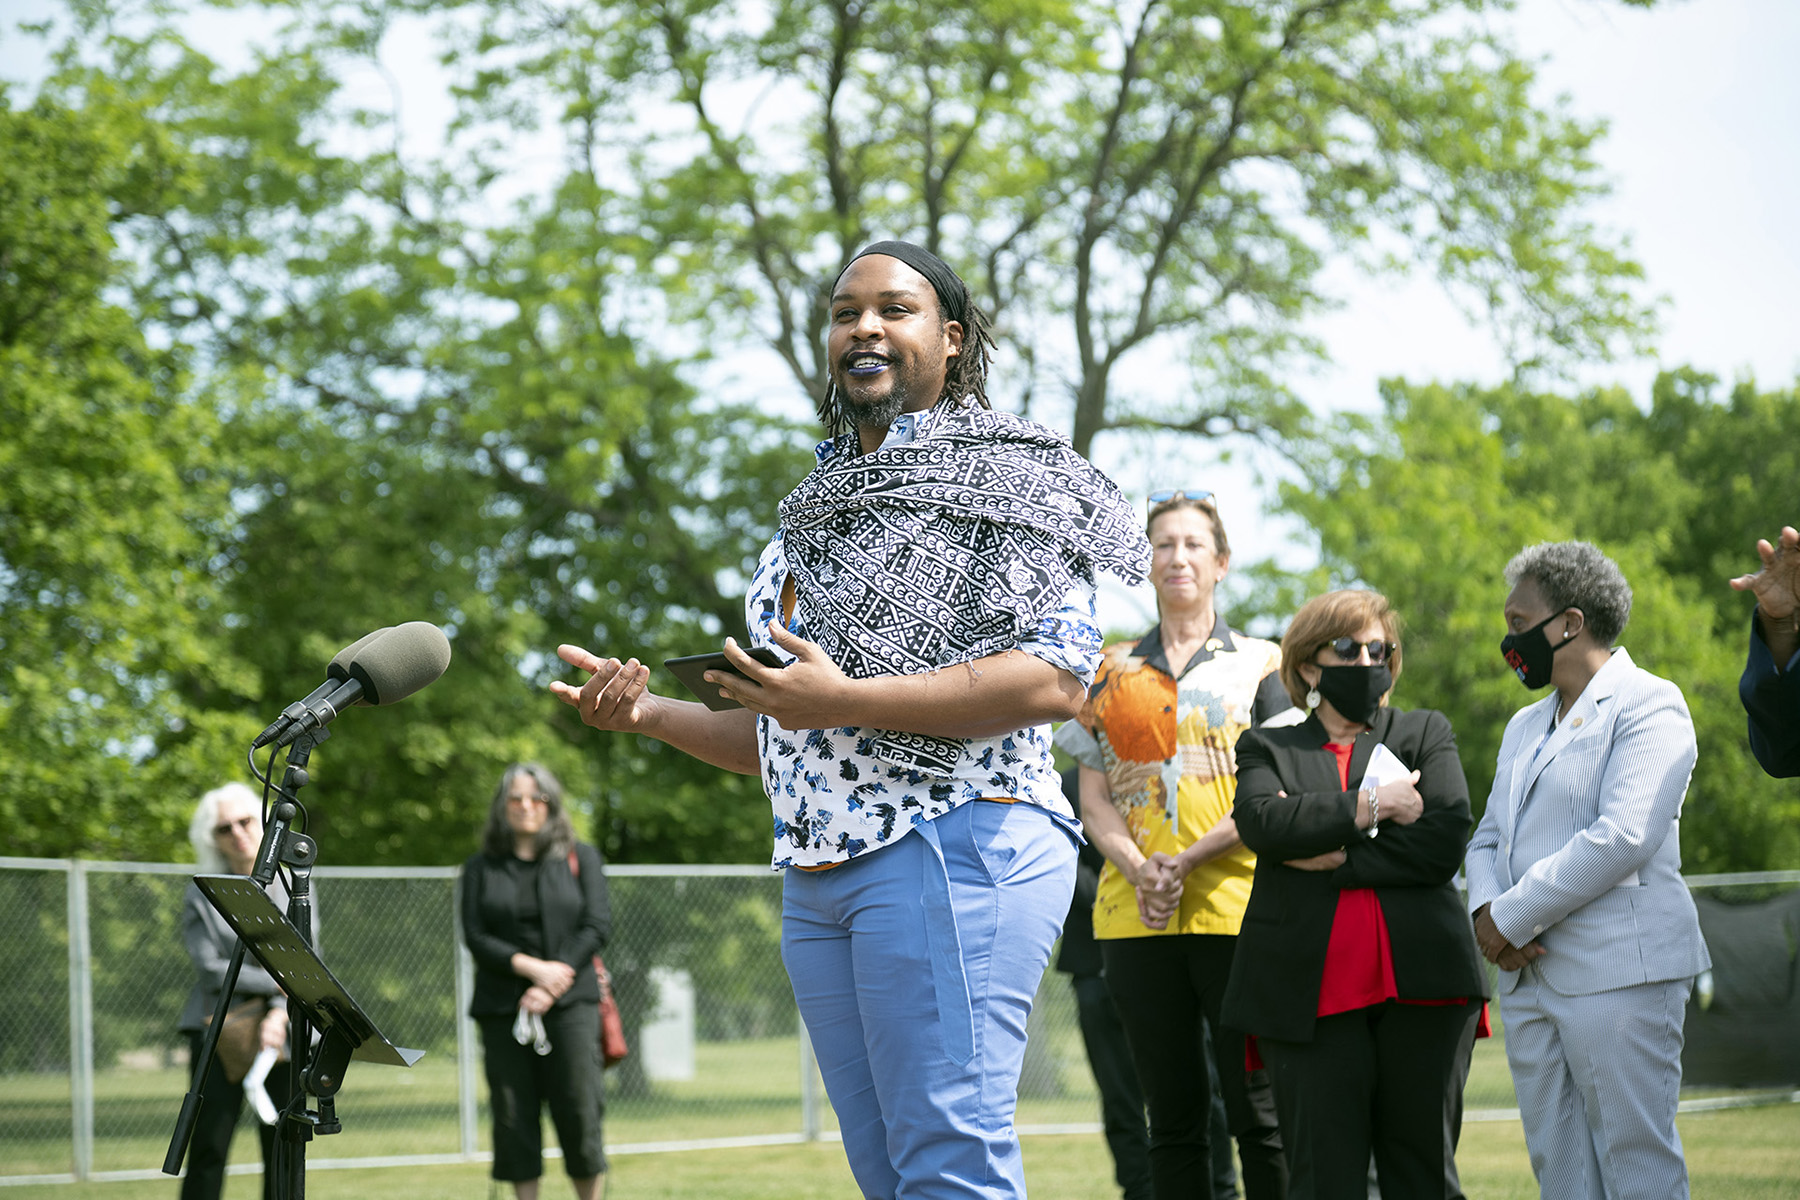 Poet Osiris Khepera dramatic reading at the groundbreaking of the AIDS Garden memorial along Chicago's lakefront